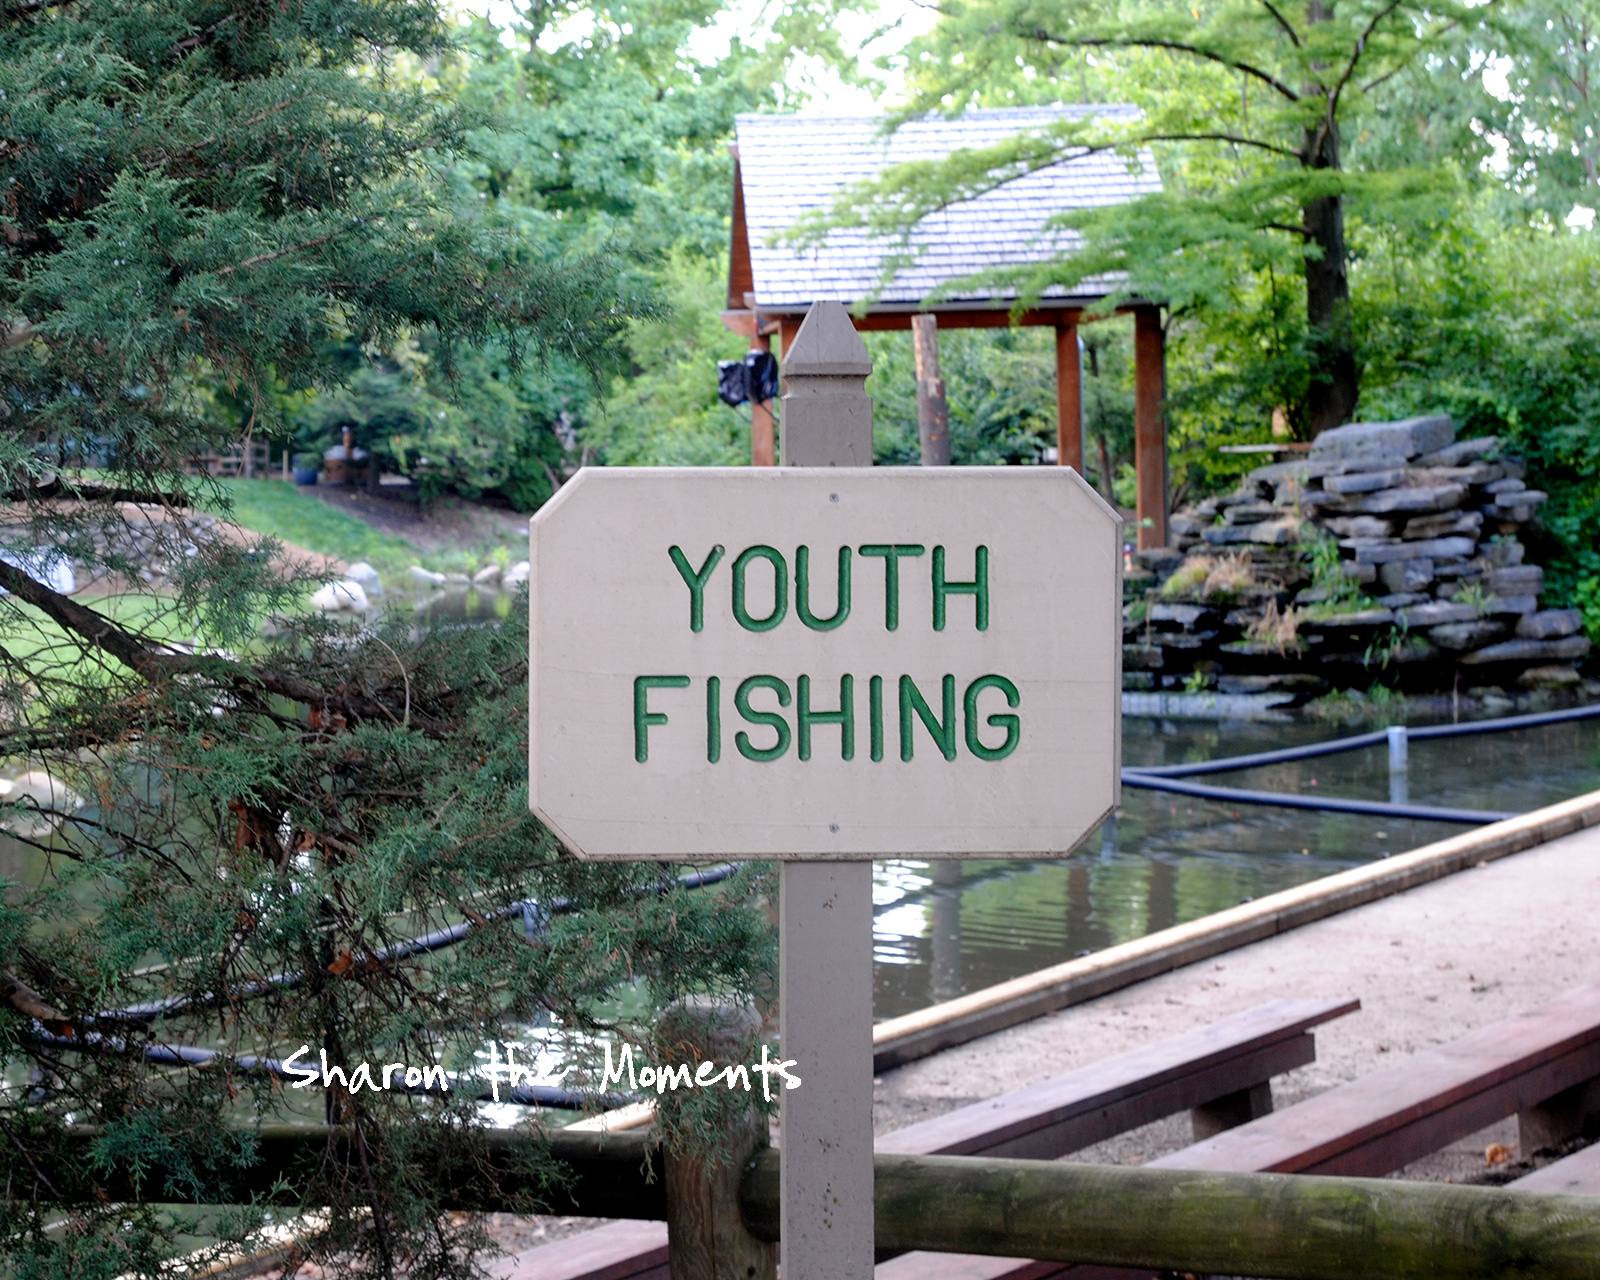 Ohio State Fair Dept of Natural Resources Youth Fishing Fond Memories|Sharon the Moments blog